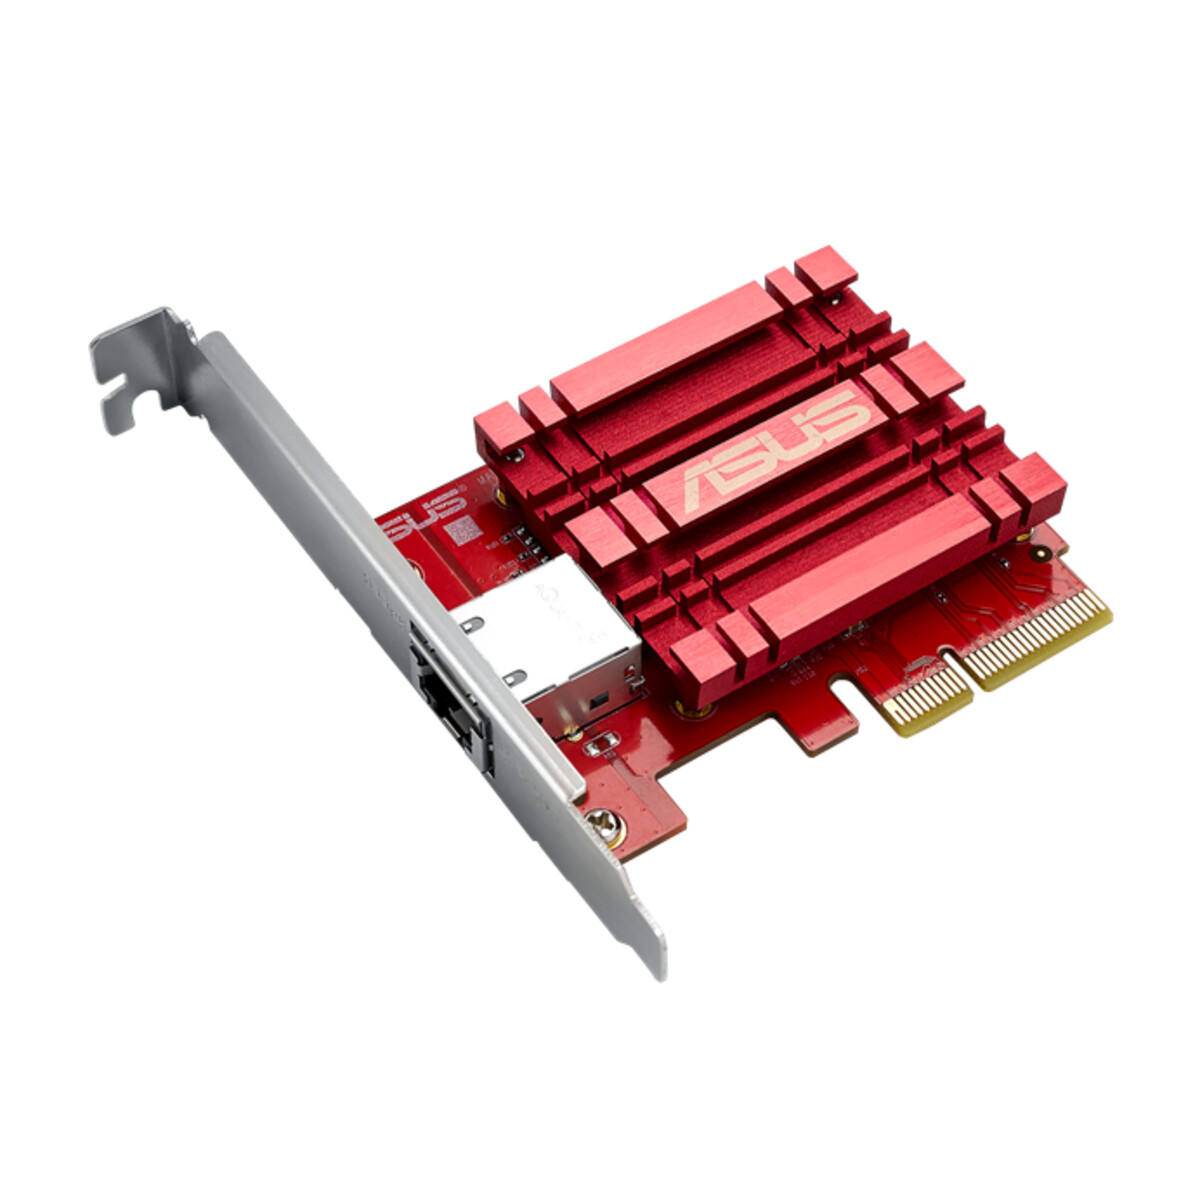 4712900620061-asus-10gbase-t-pci-e-network-adapter